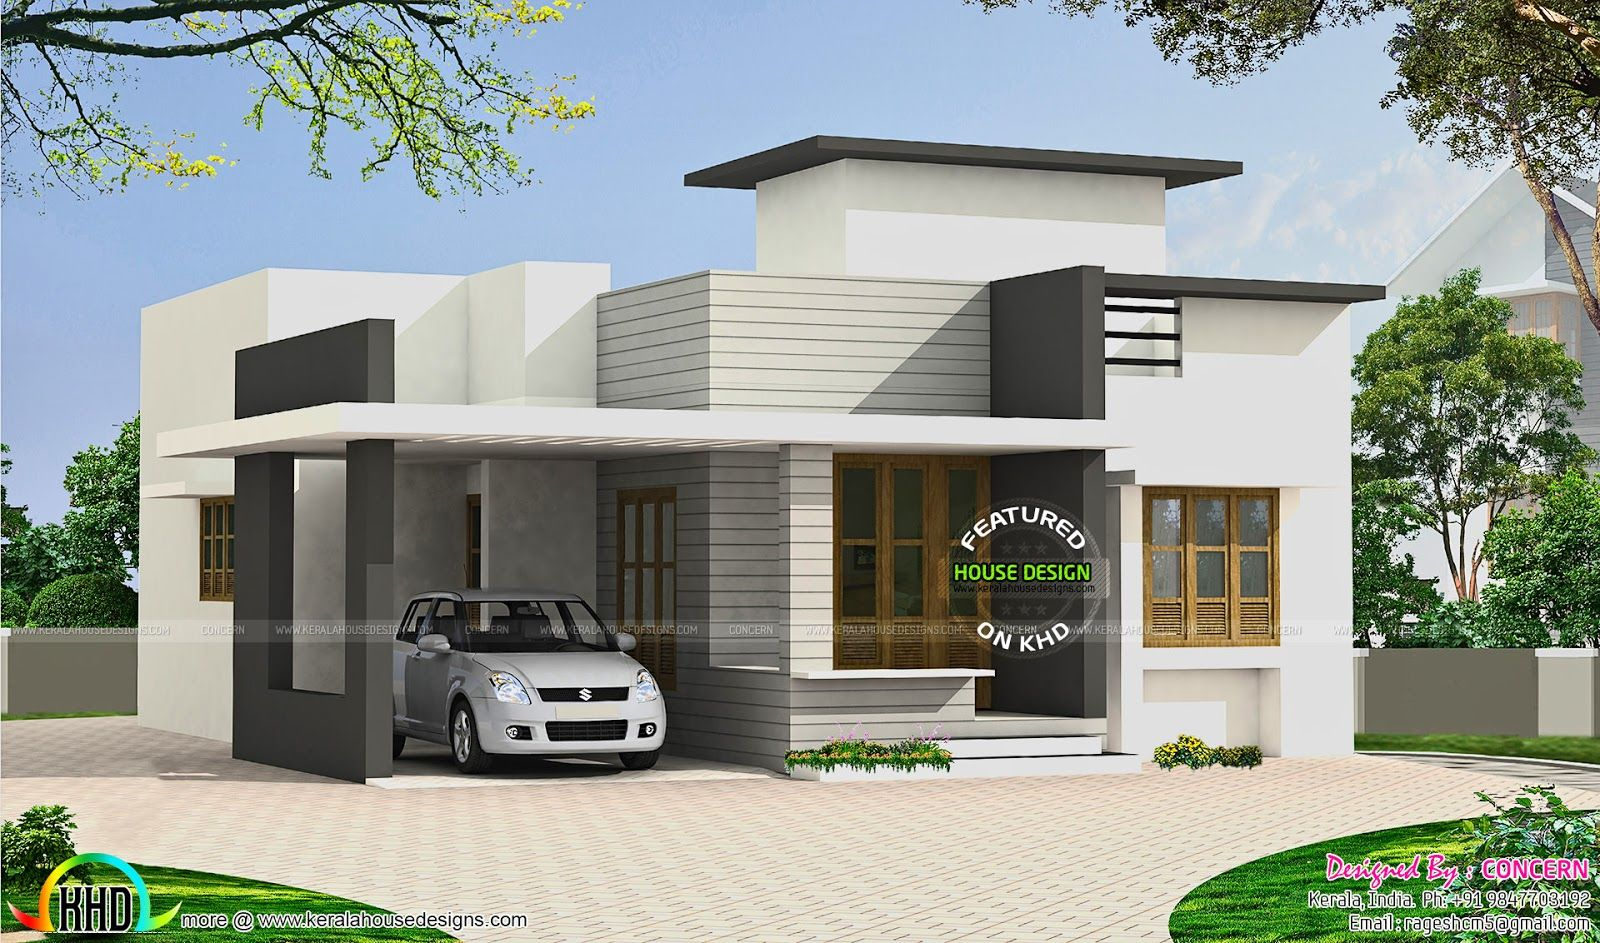 Modern Single Floor House Designs Of Image Result For Parking Roof Design In Single Floor